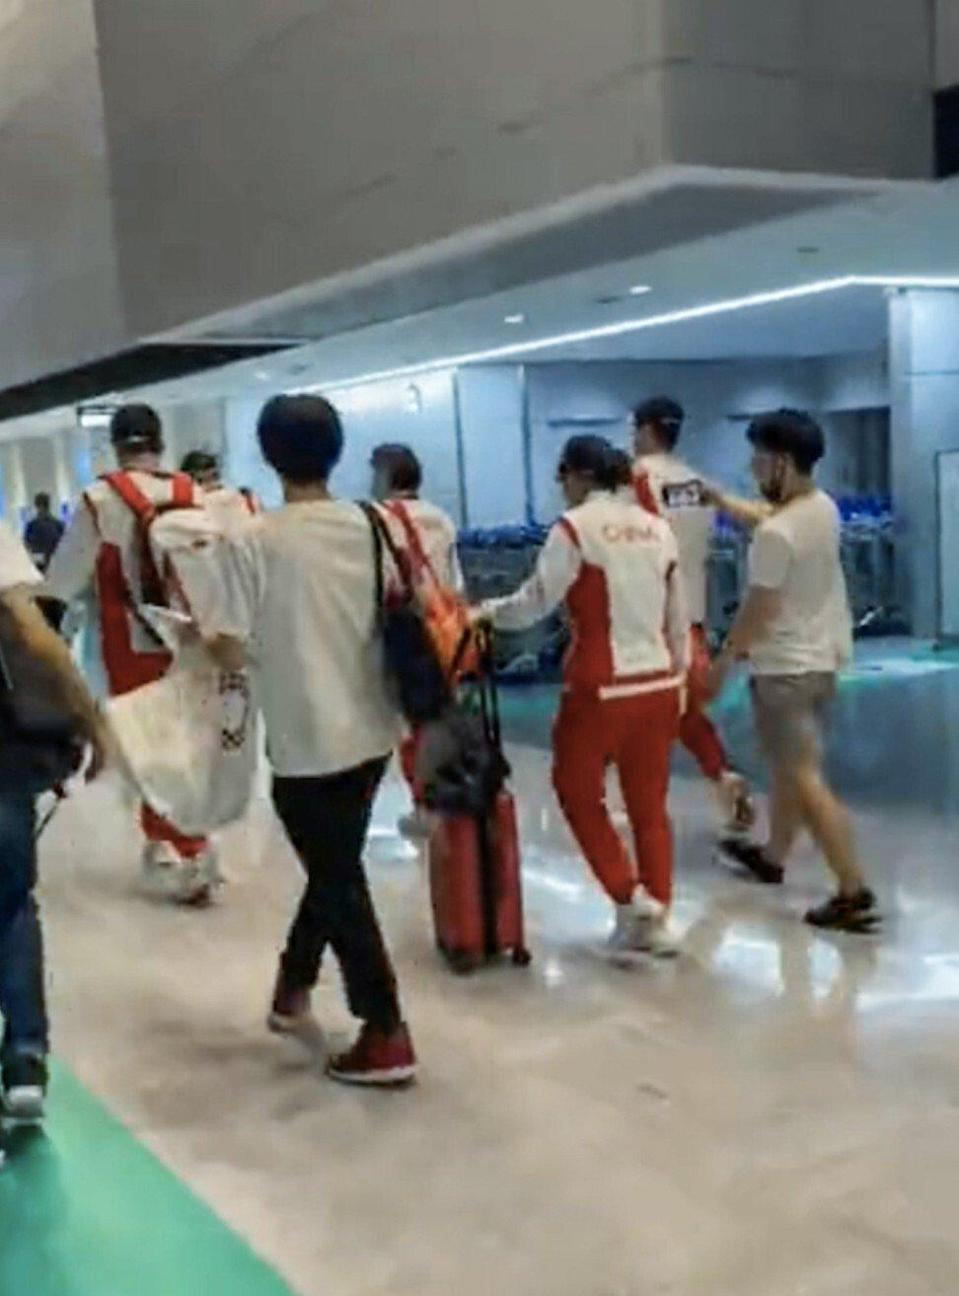 Unmasked Japanese fans approach the Chinese table tennis team at Narita International Airport. Photo: Weibo